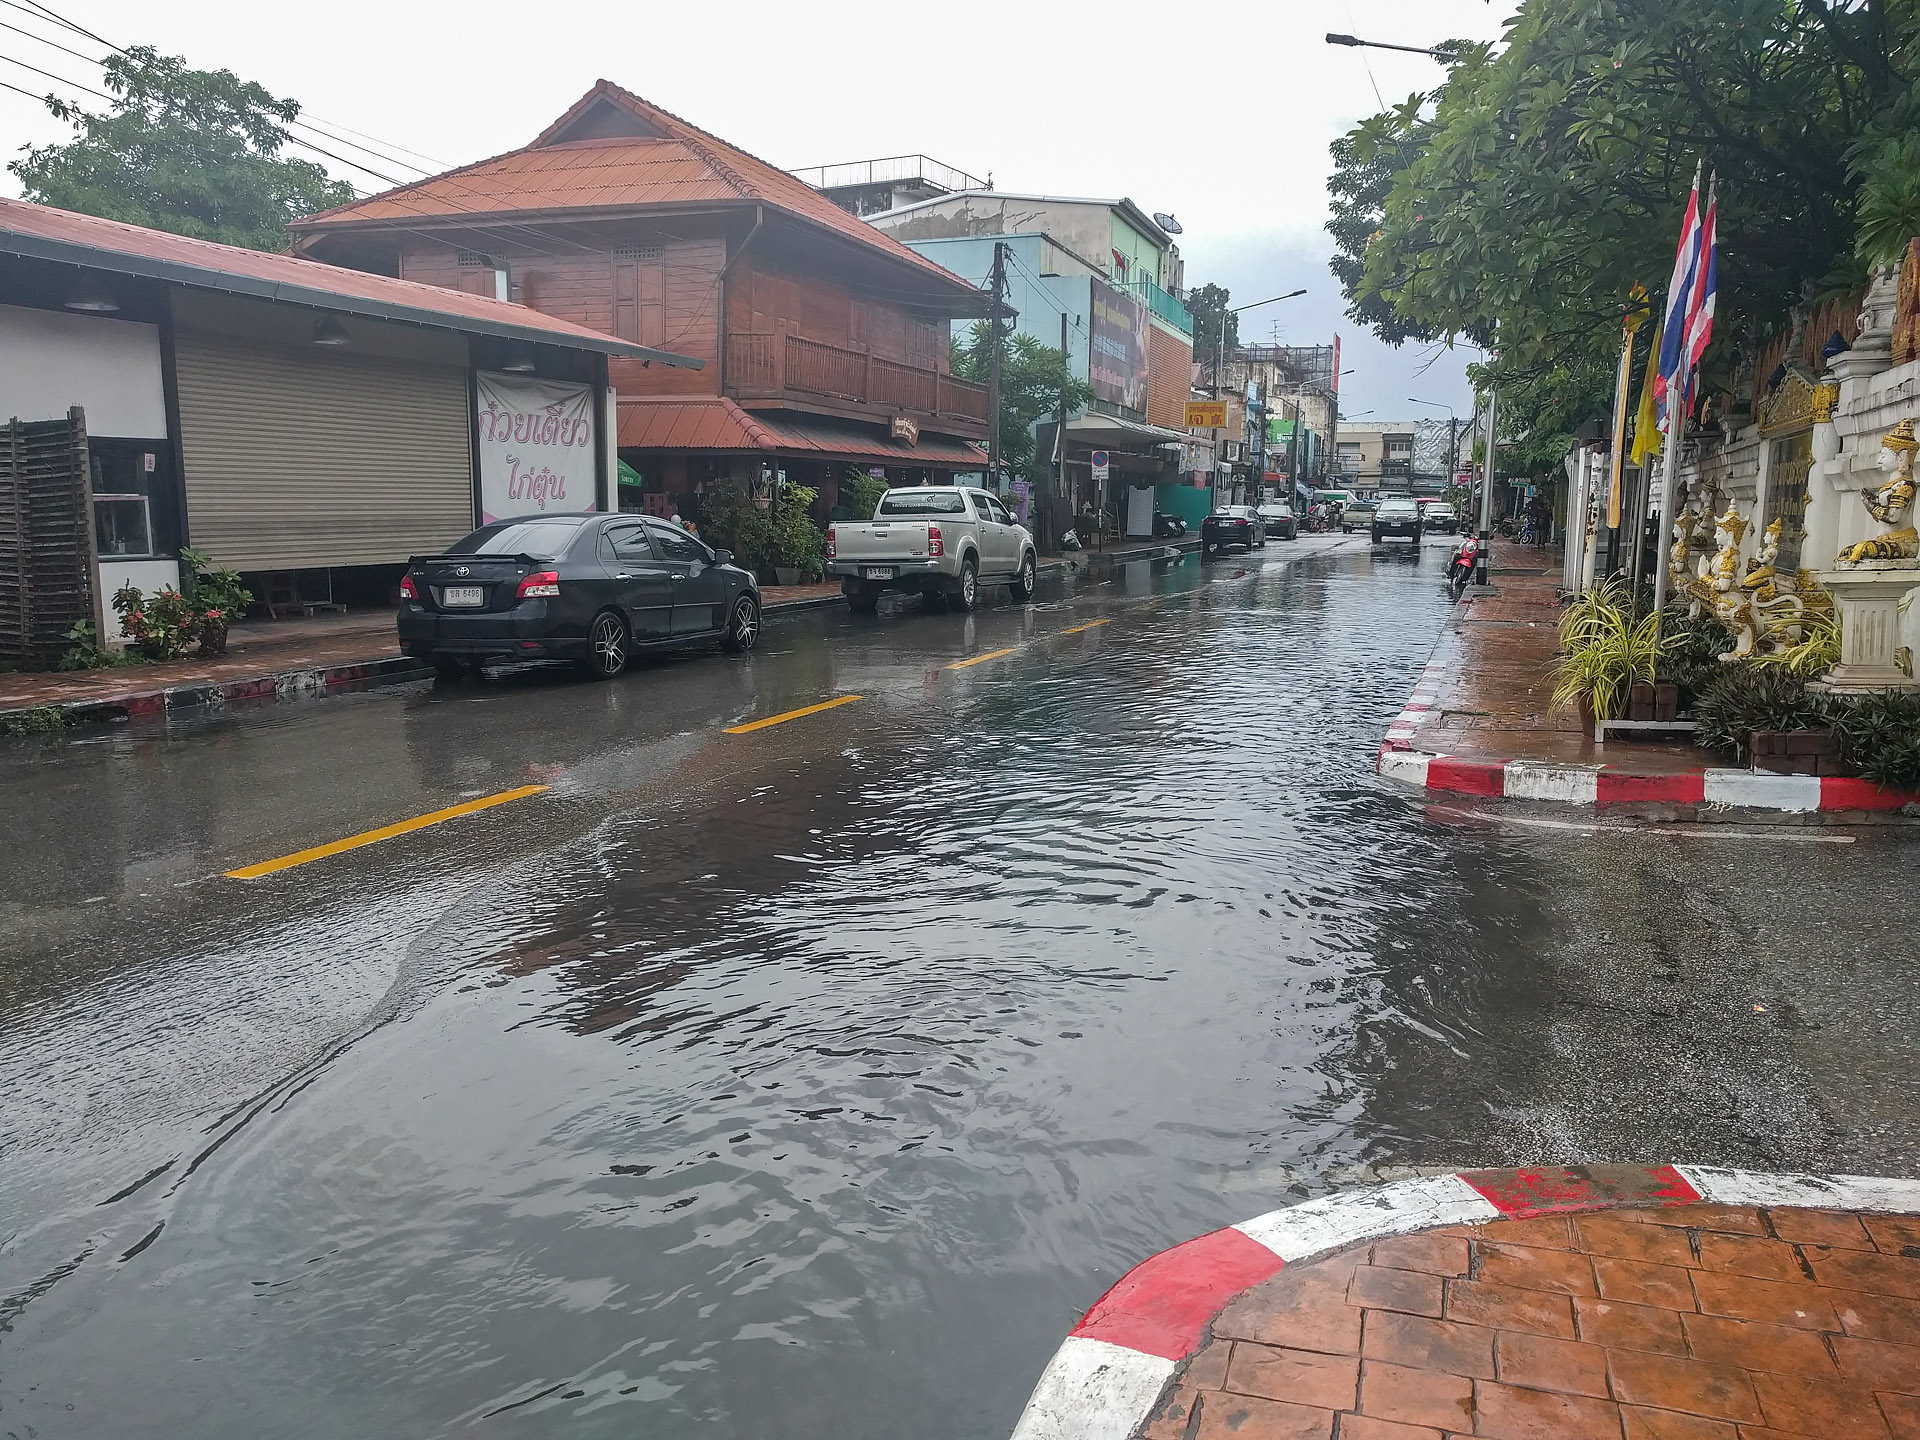 Chiang Mai street after the downpour